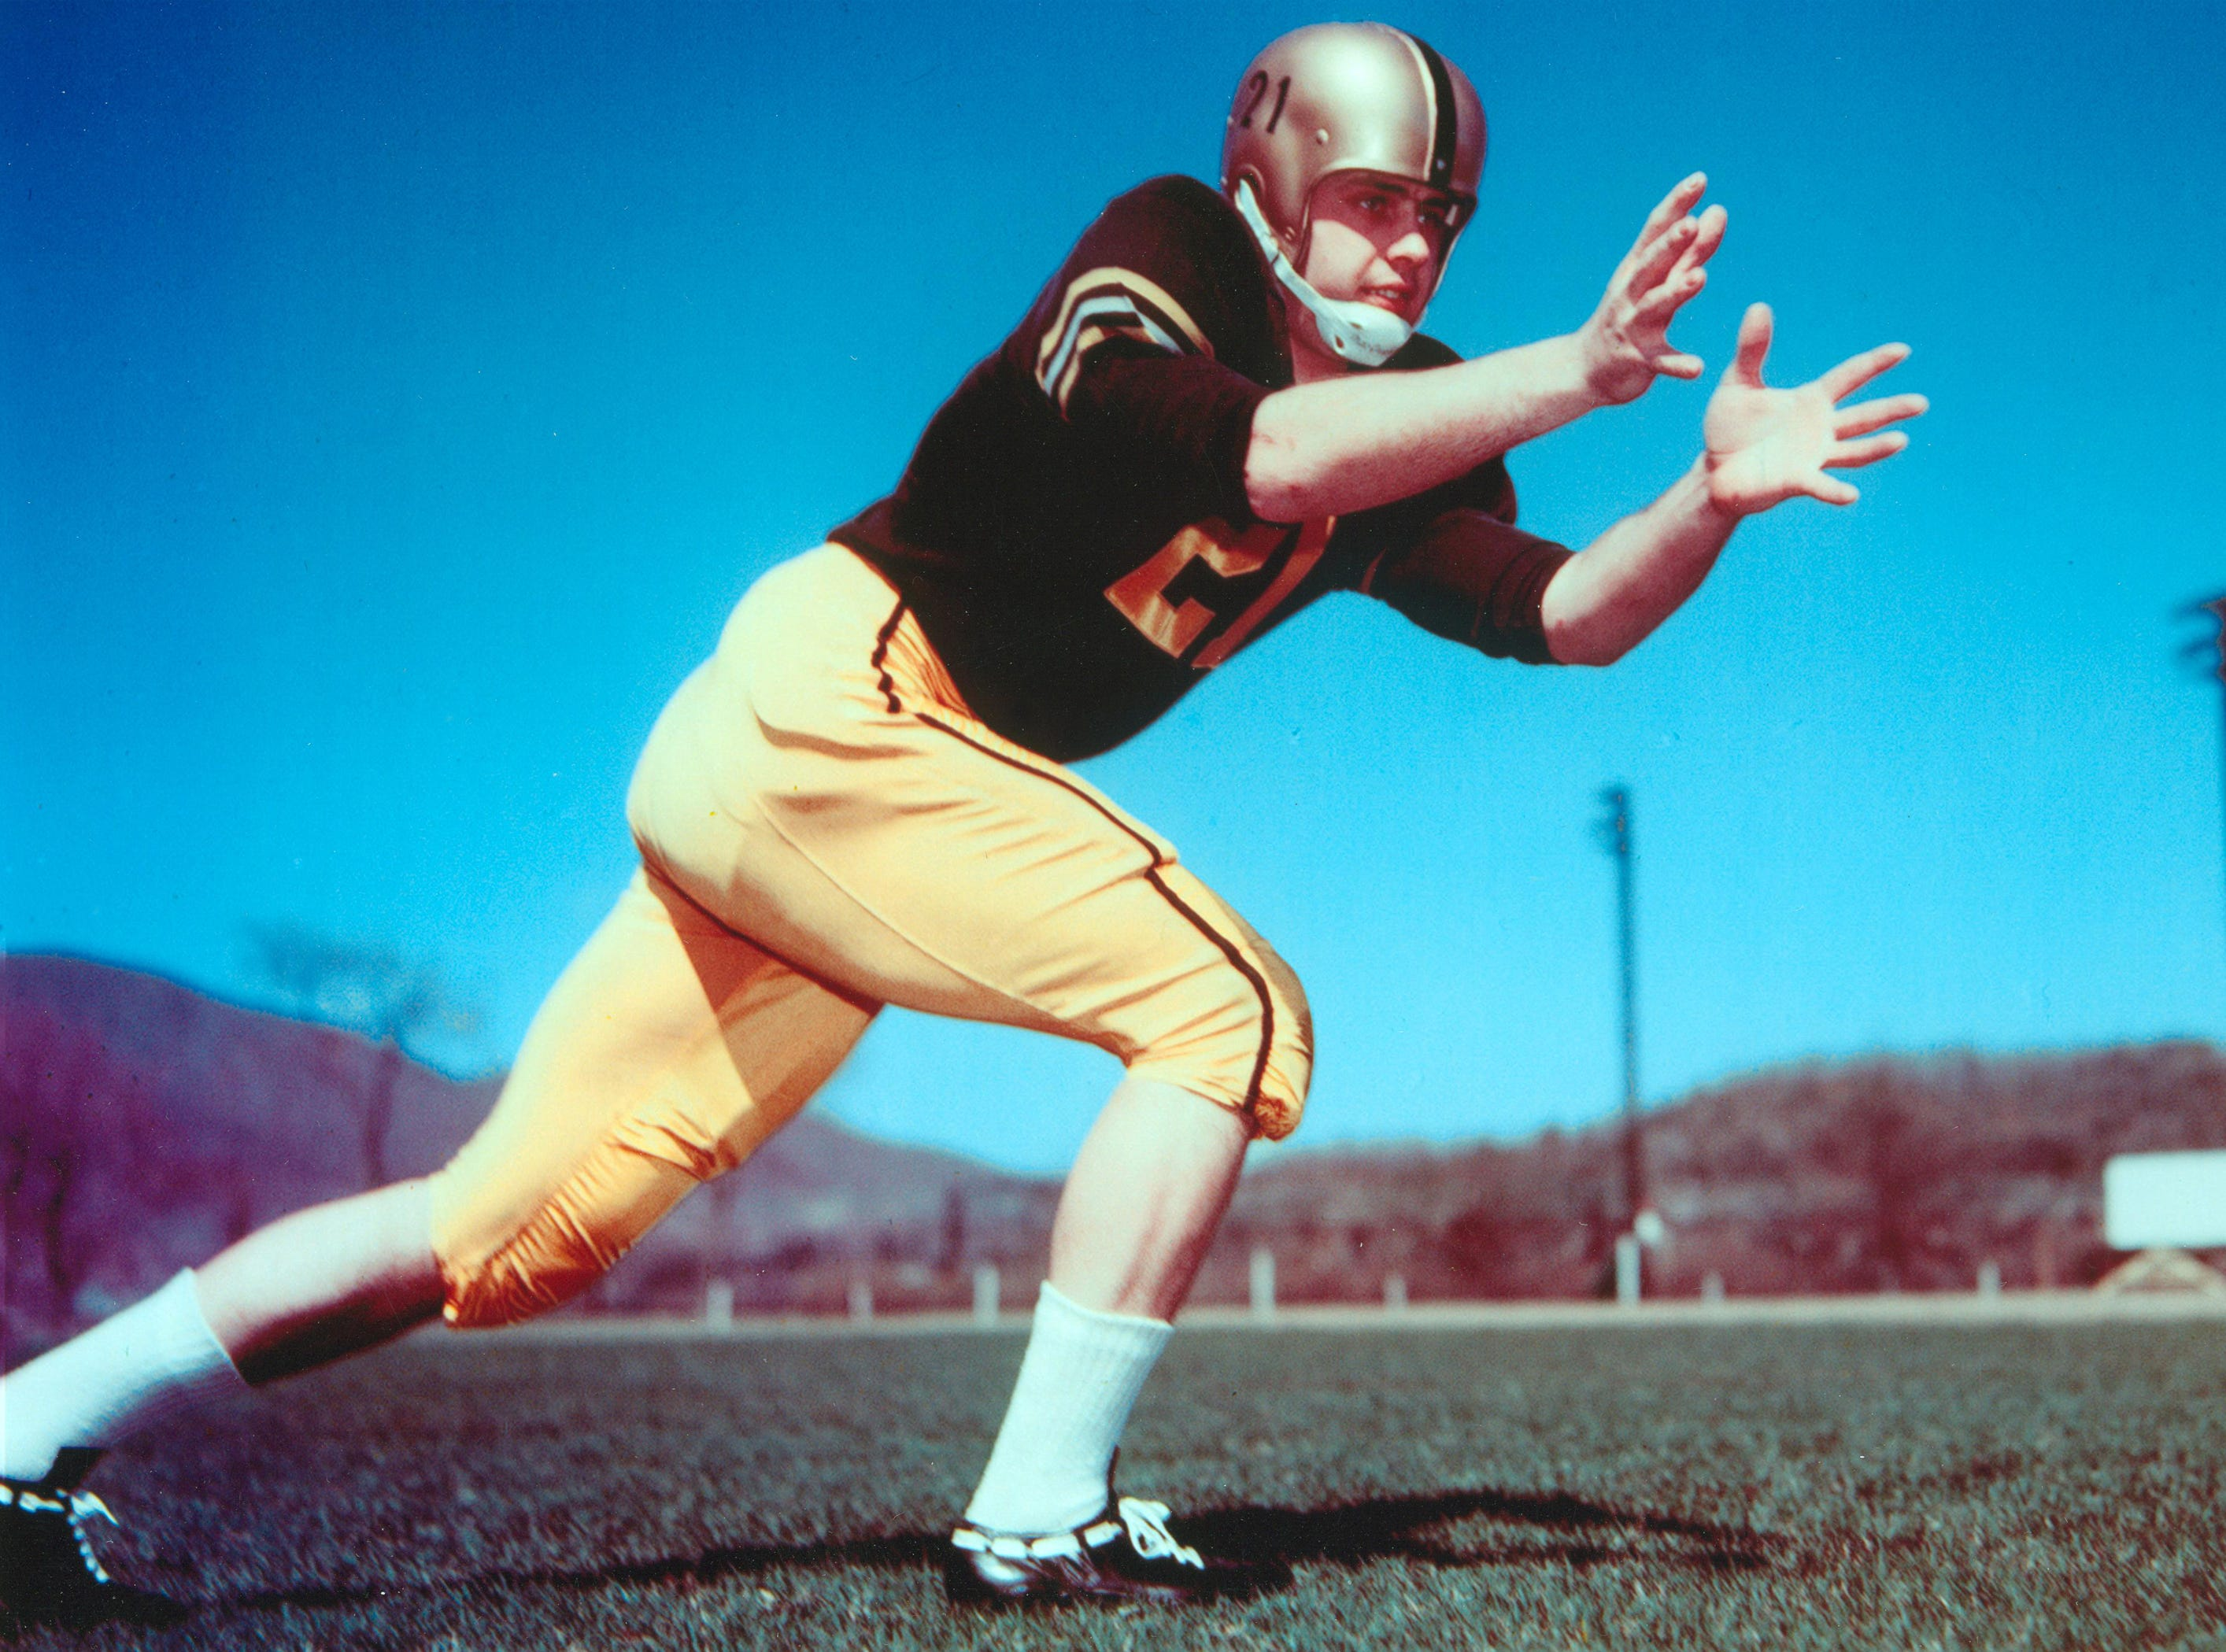 Cocoa grad Bob Anderson, pictured while playing at West Point, was picked in the ninth round by the New York Giants in 1960, the first Brevard County prep product drafted into the NFL. He was inducted into the College Football Hall of Fame in 2004. Photo courtesy of U.S. Military Academy.